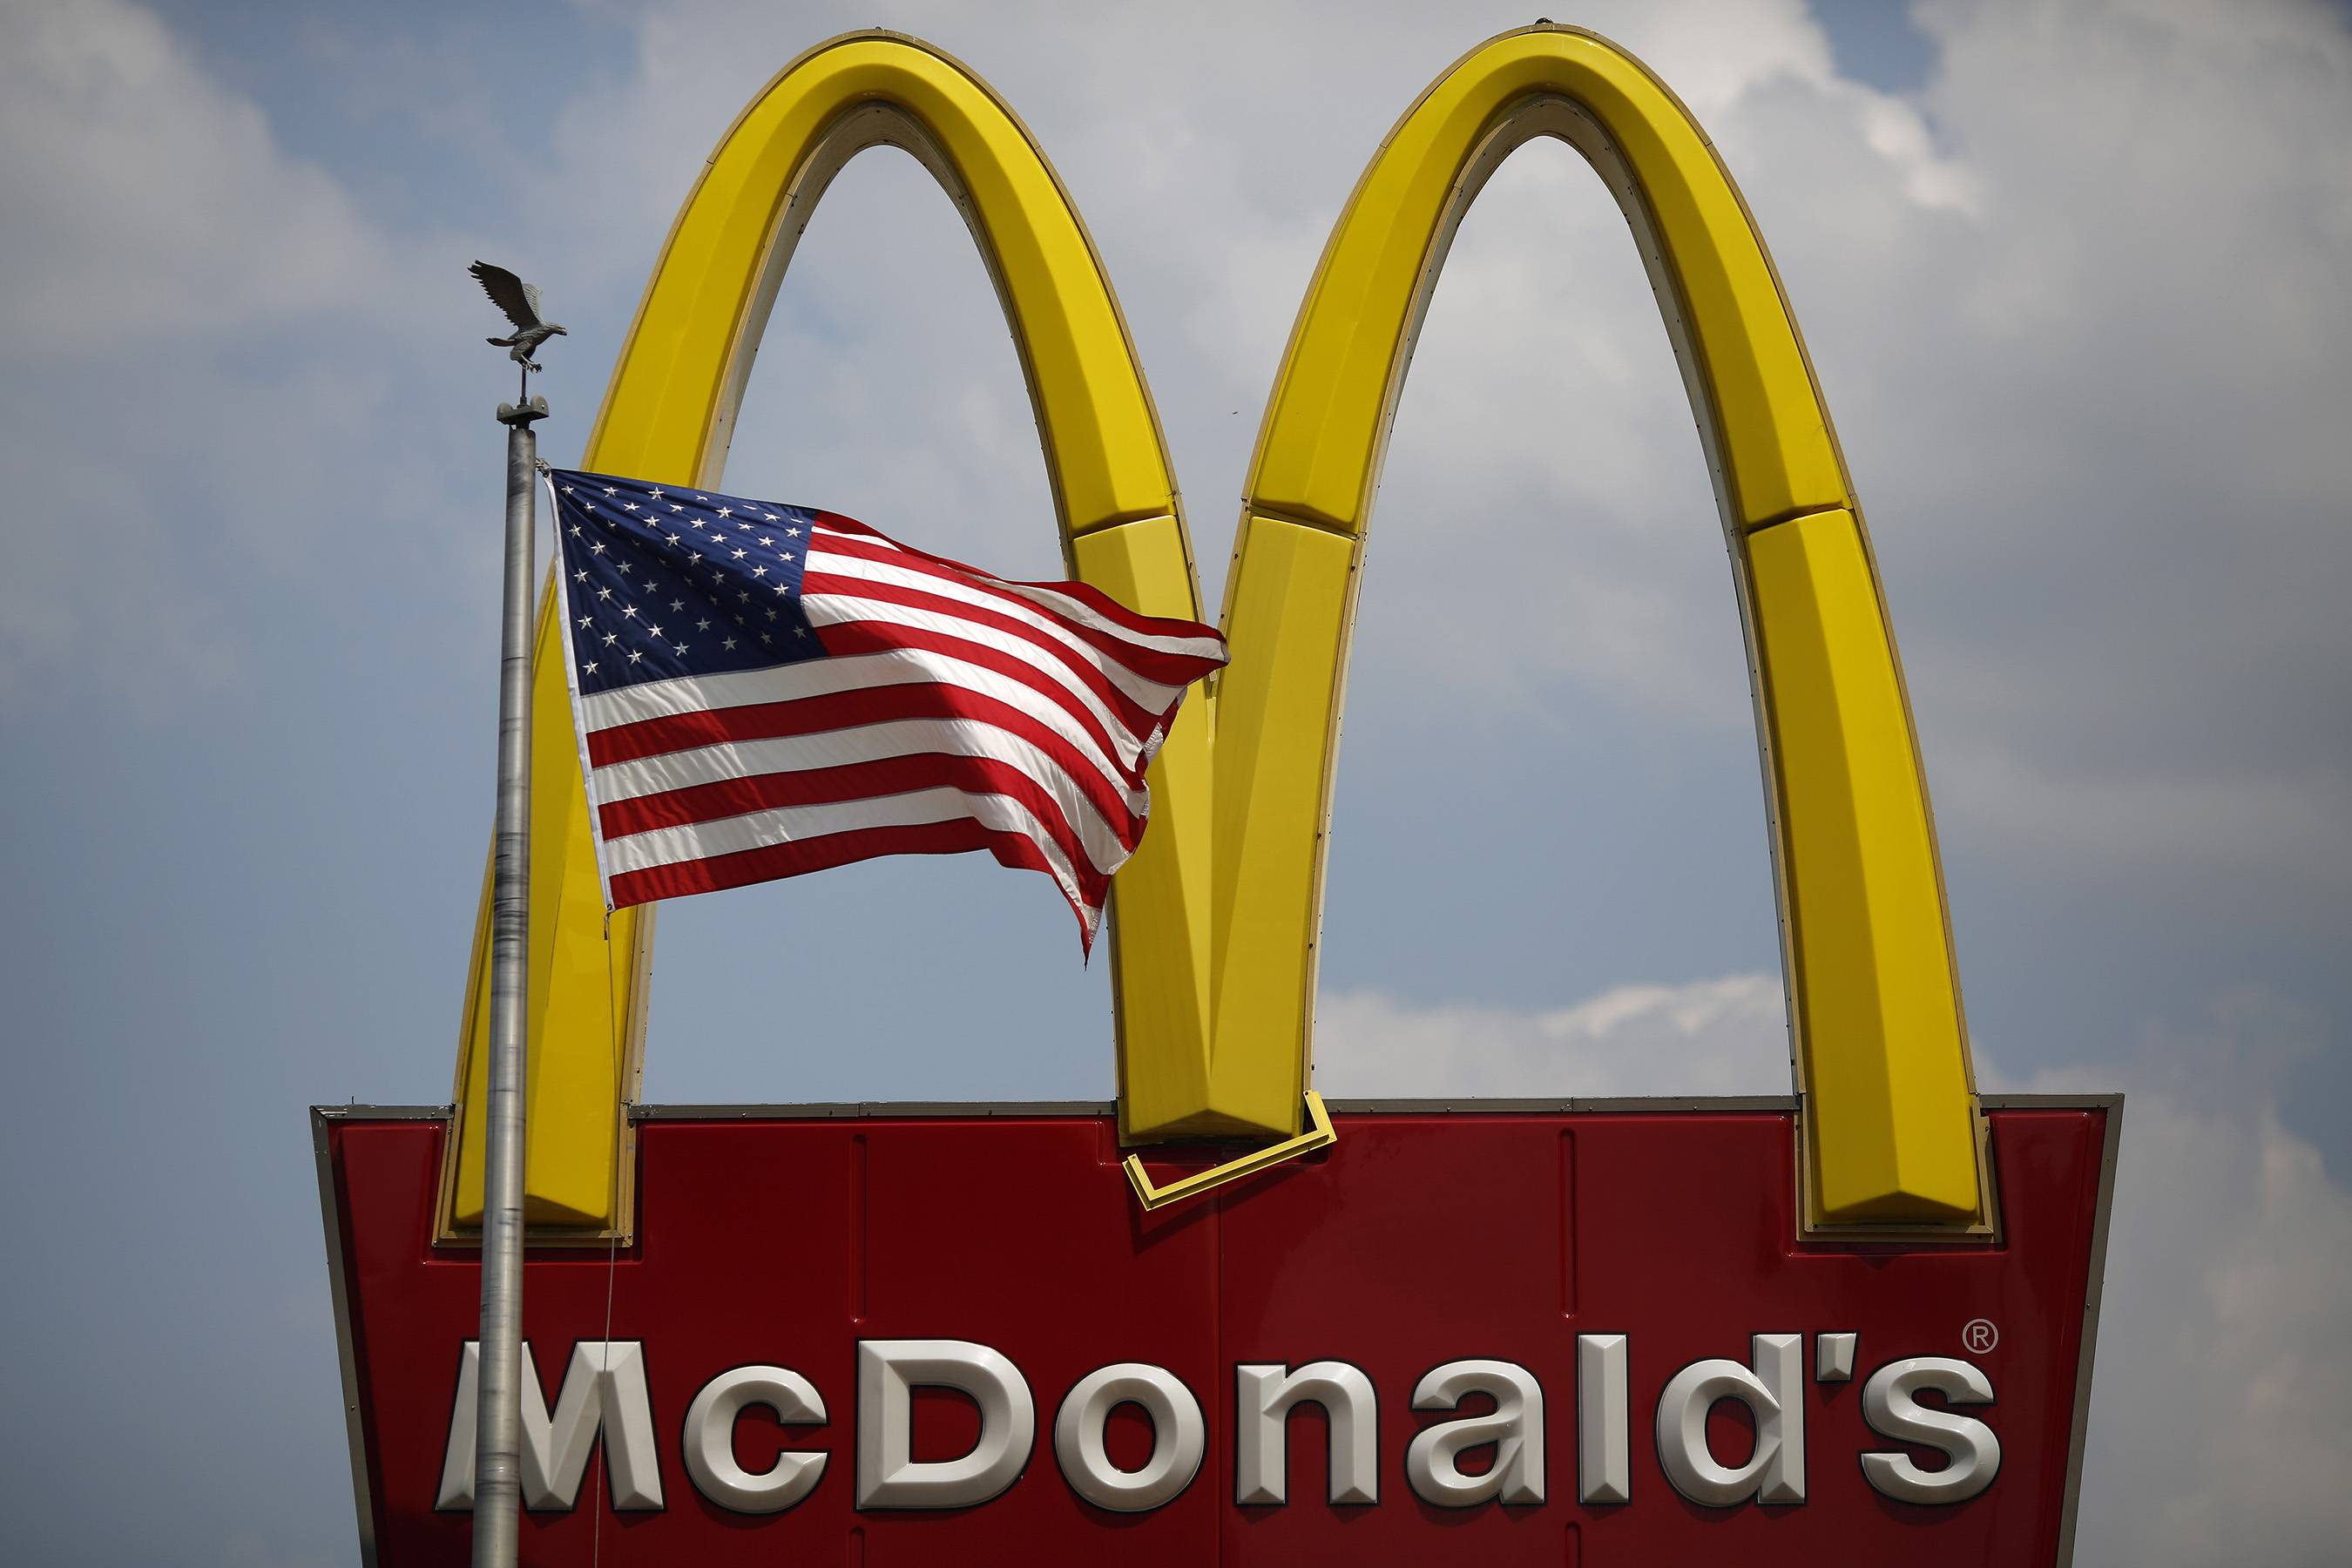 The National Labor Relations Board issued complaints Friday against Oak Brook-based McDonald's Corp. and its franchisees over worker rights.